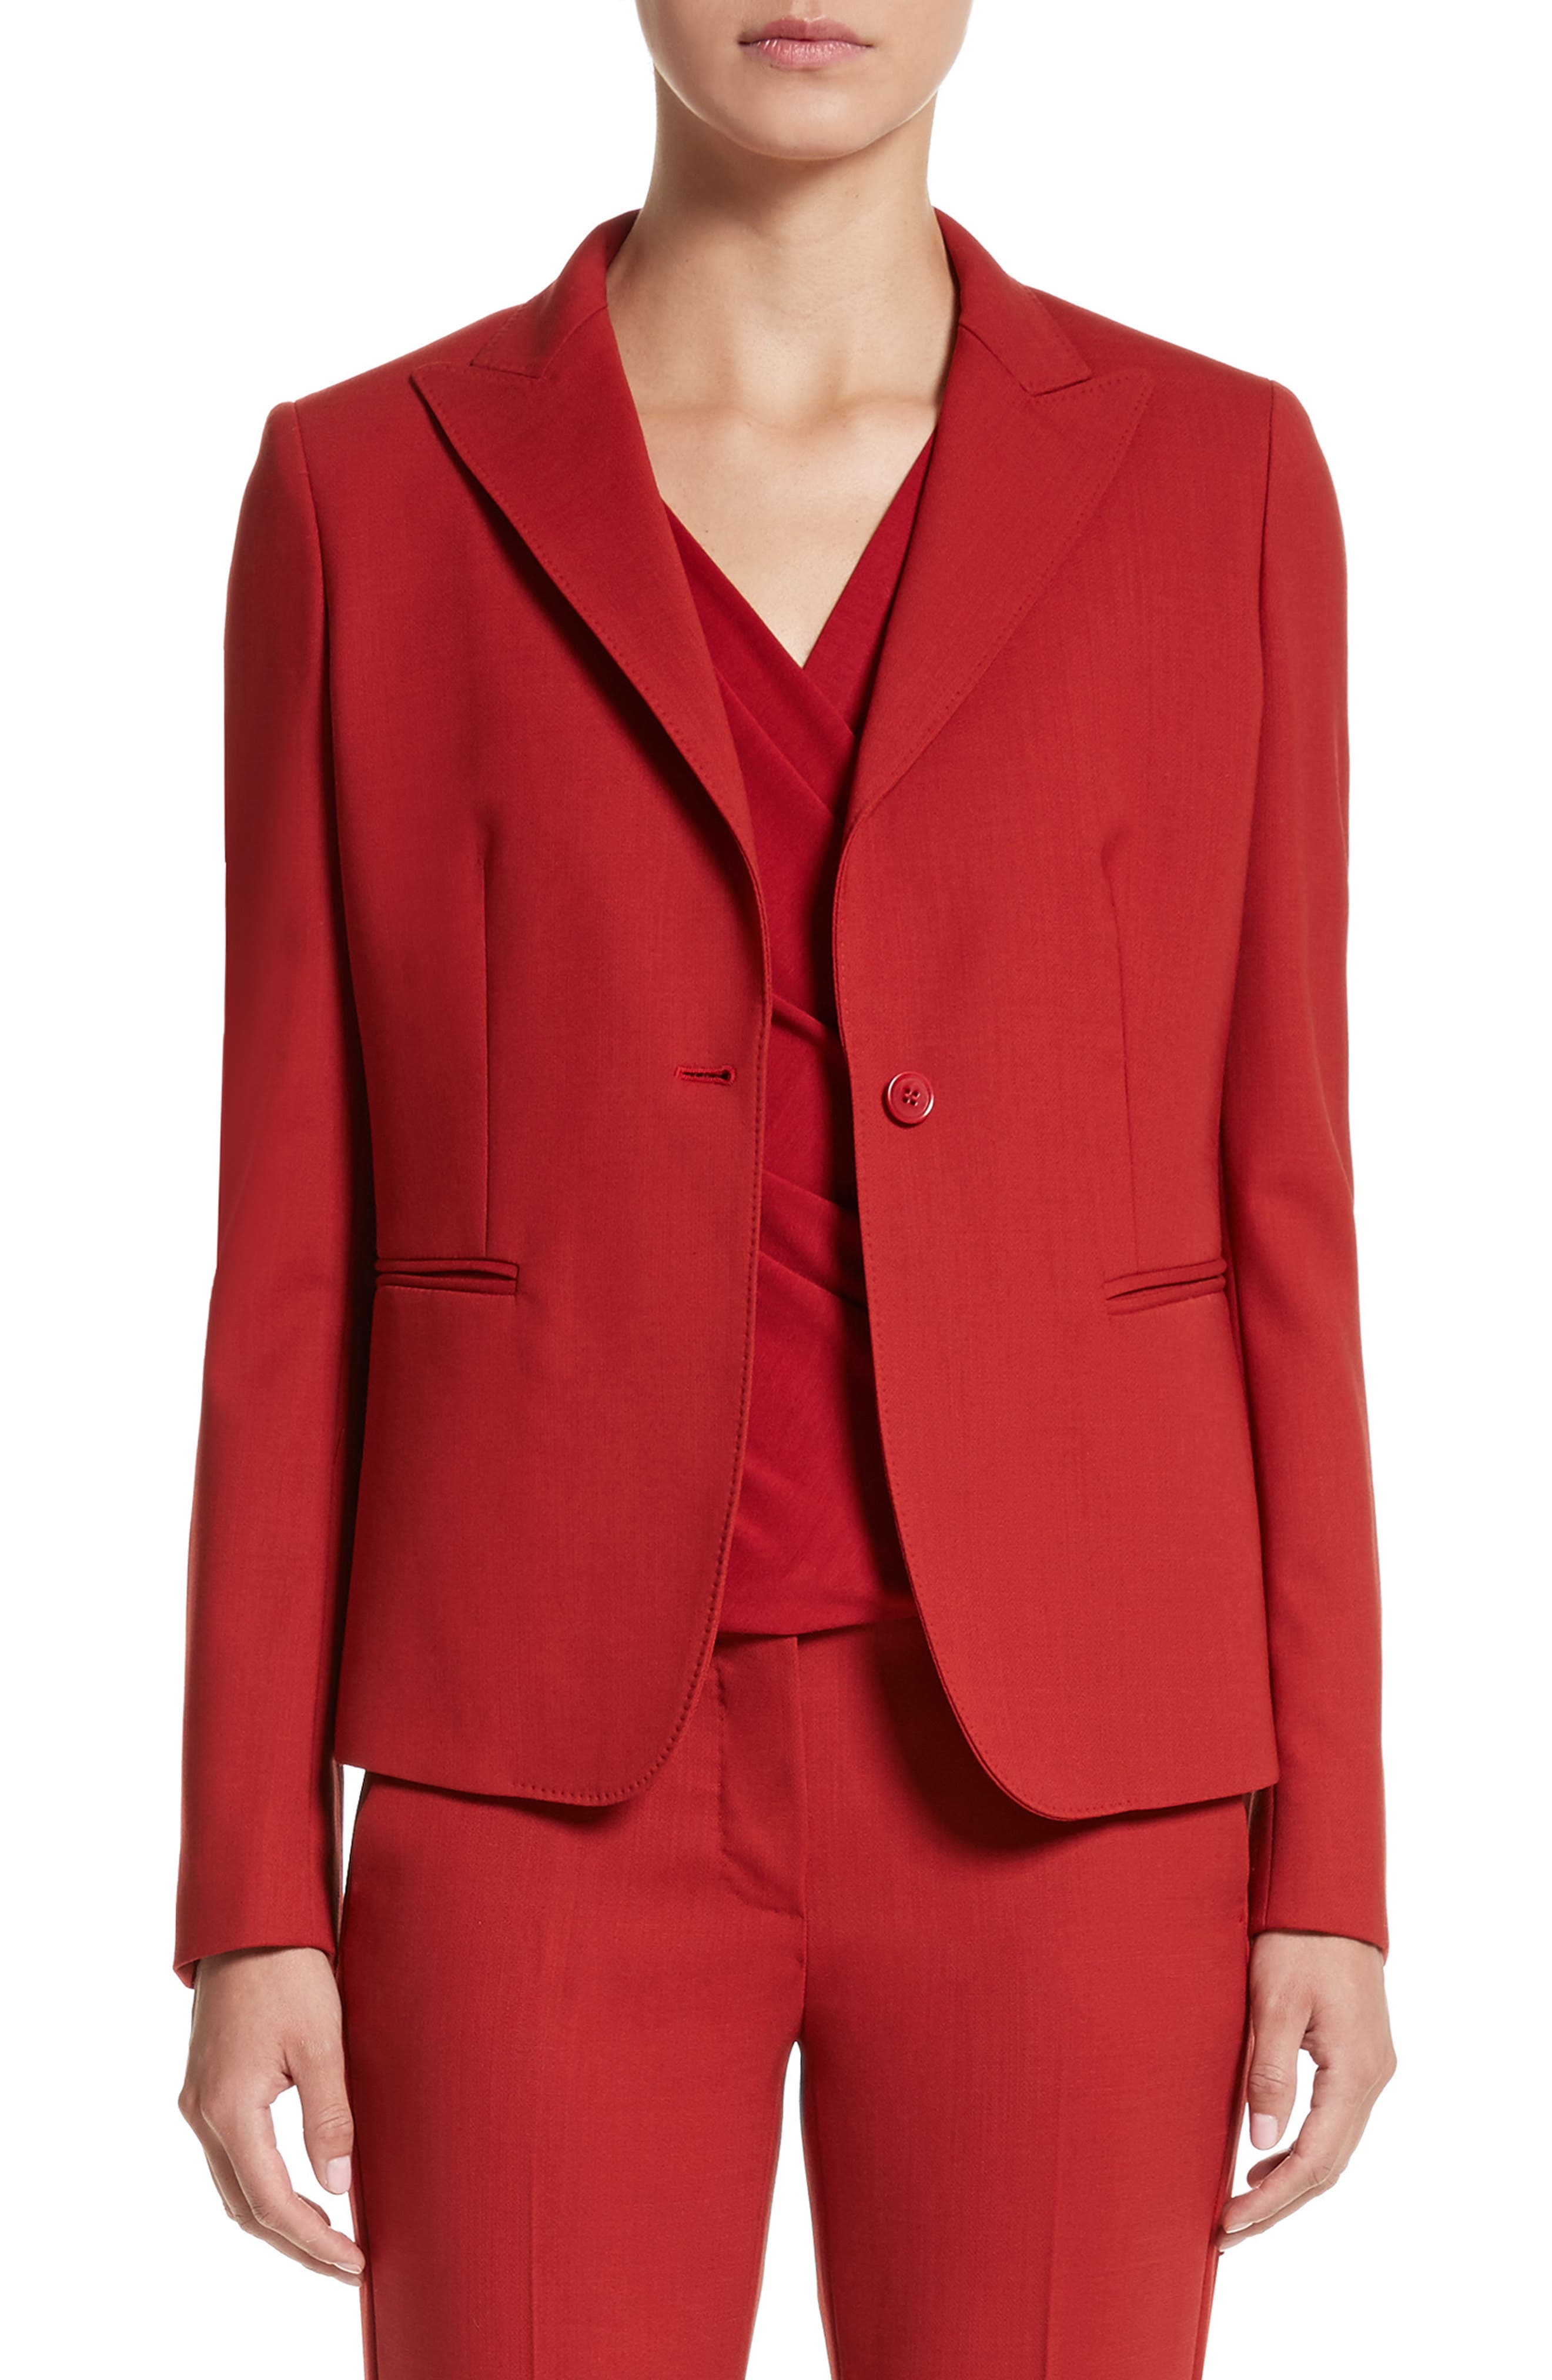 Umile Stretch Wool Jacket,                         Main,                         color, Red